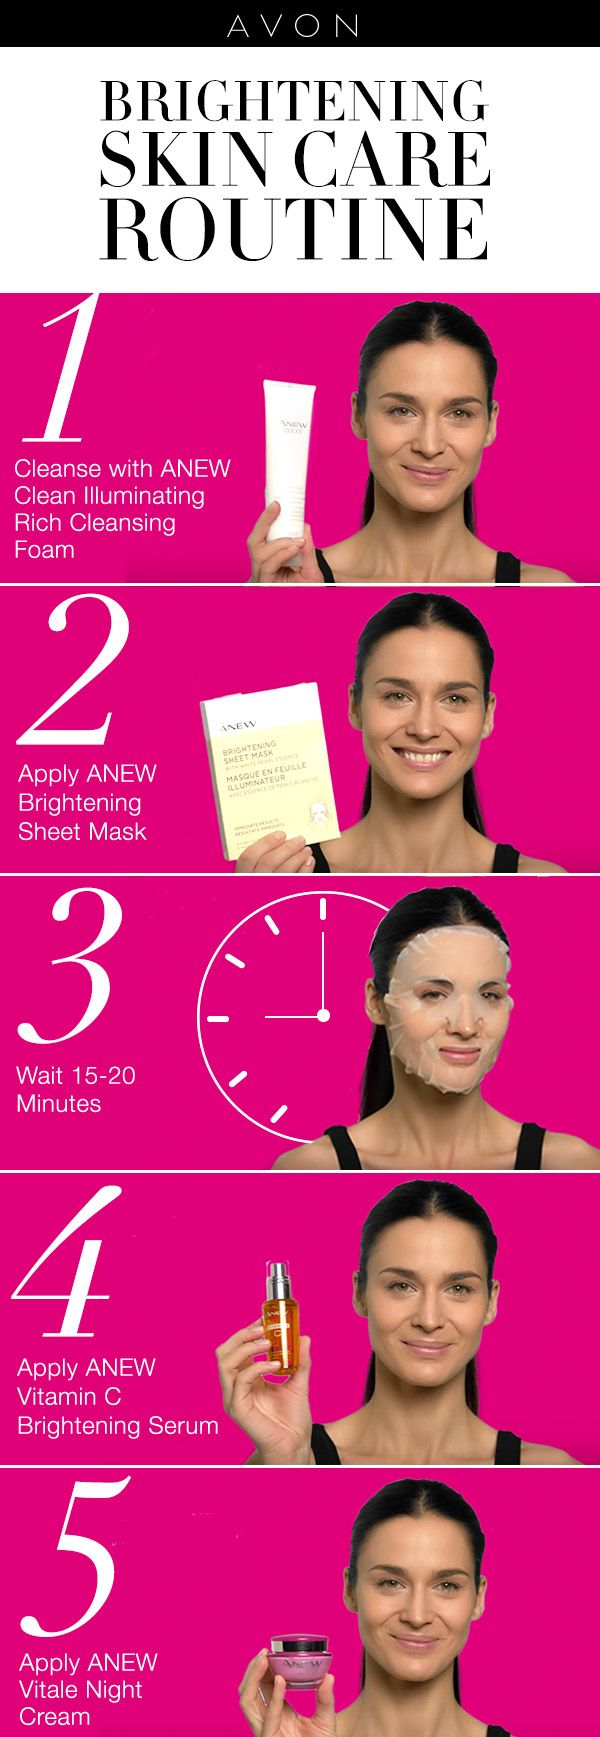 Get radiant skin in 5 steps with Avon ANEW skin care products.